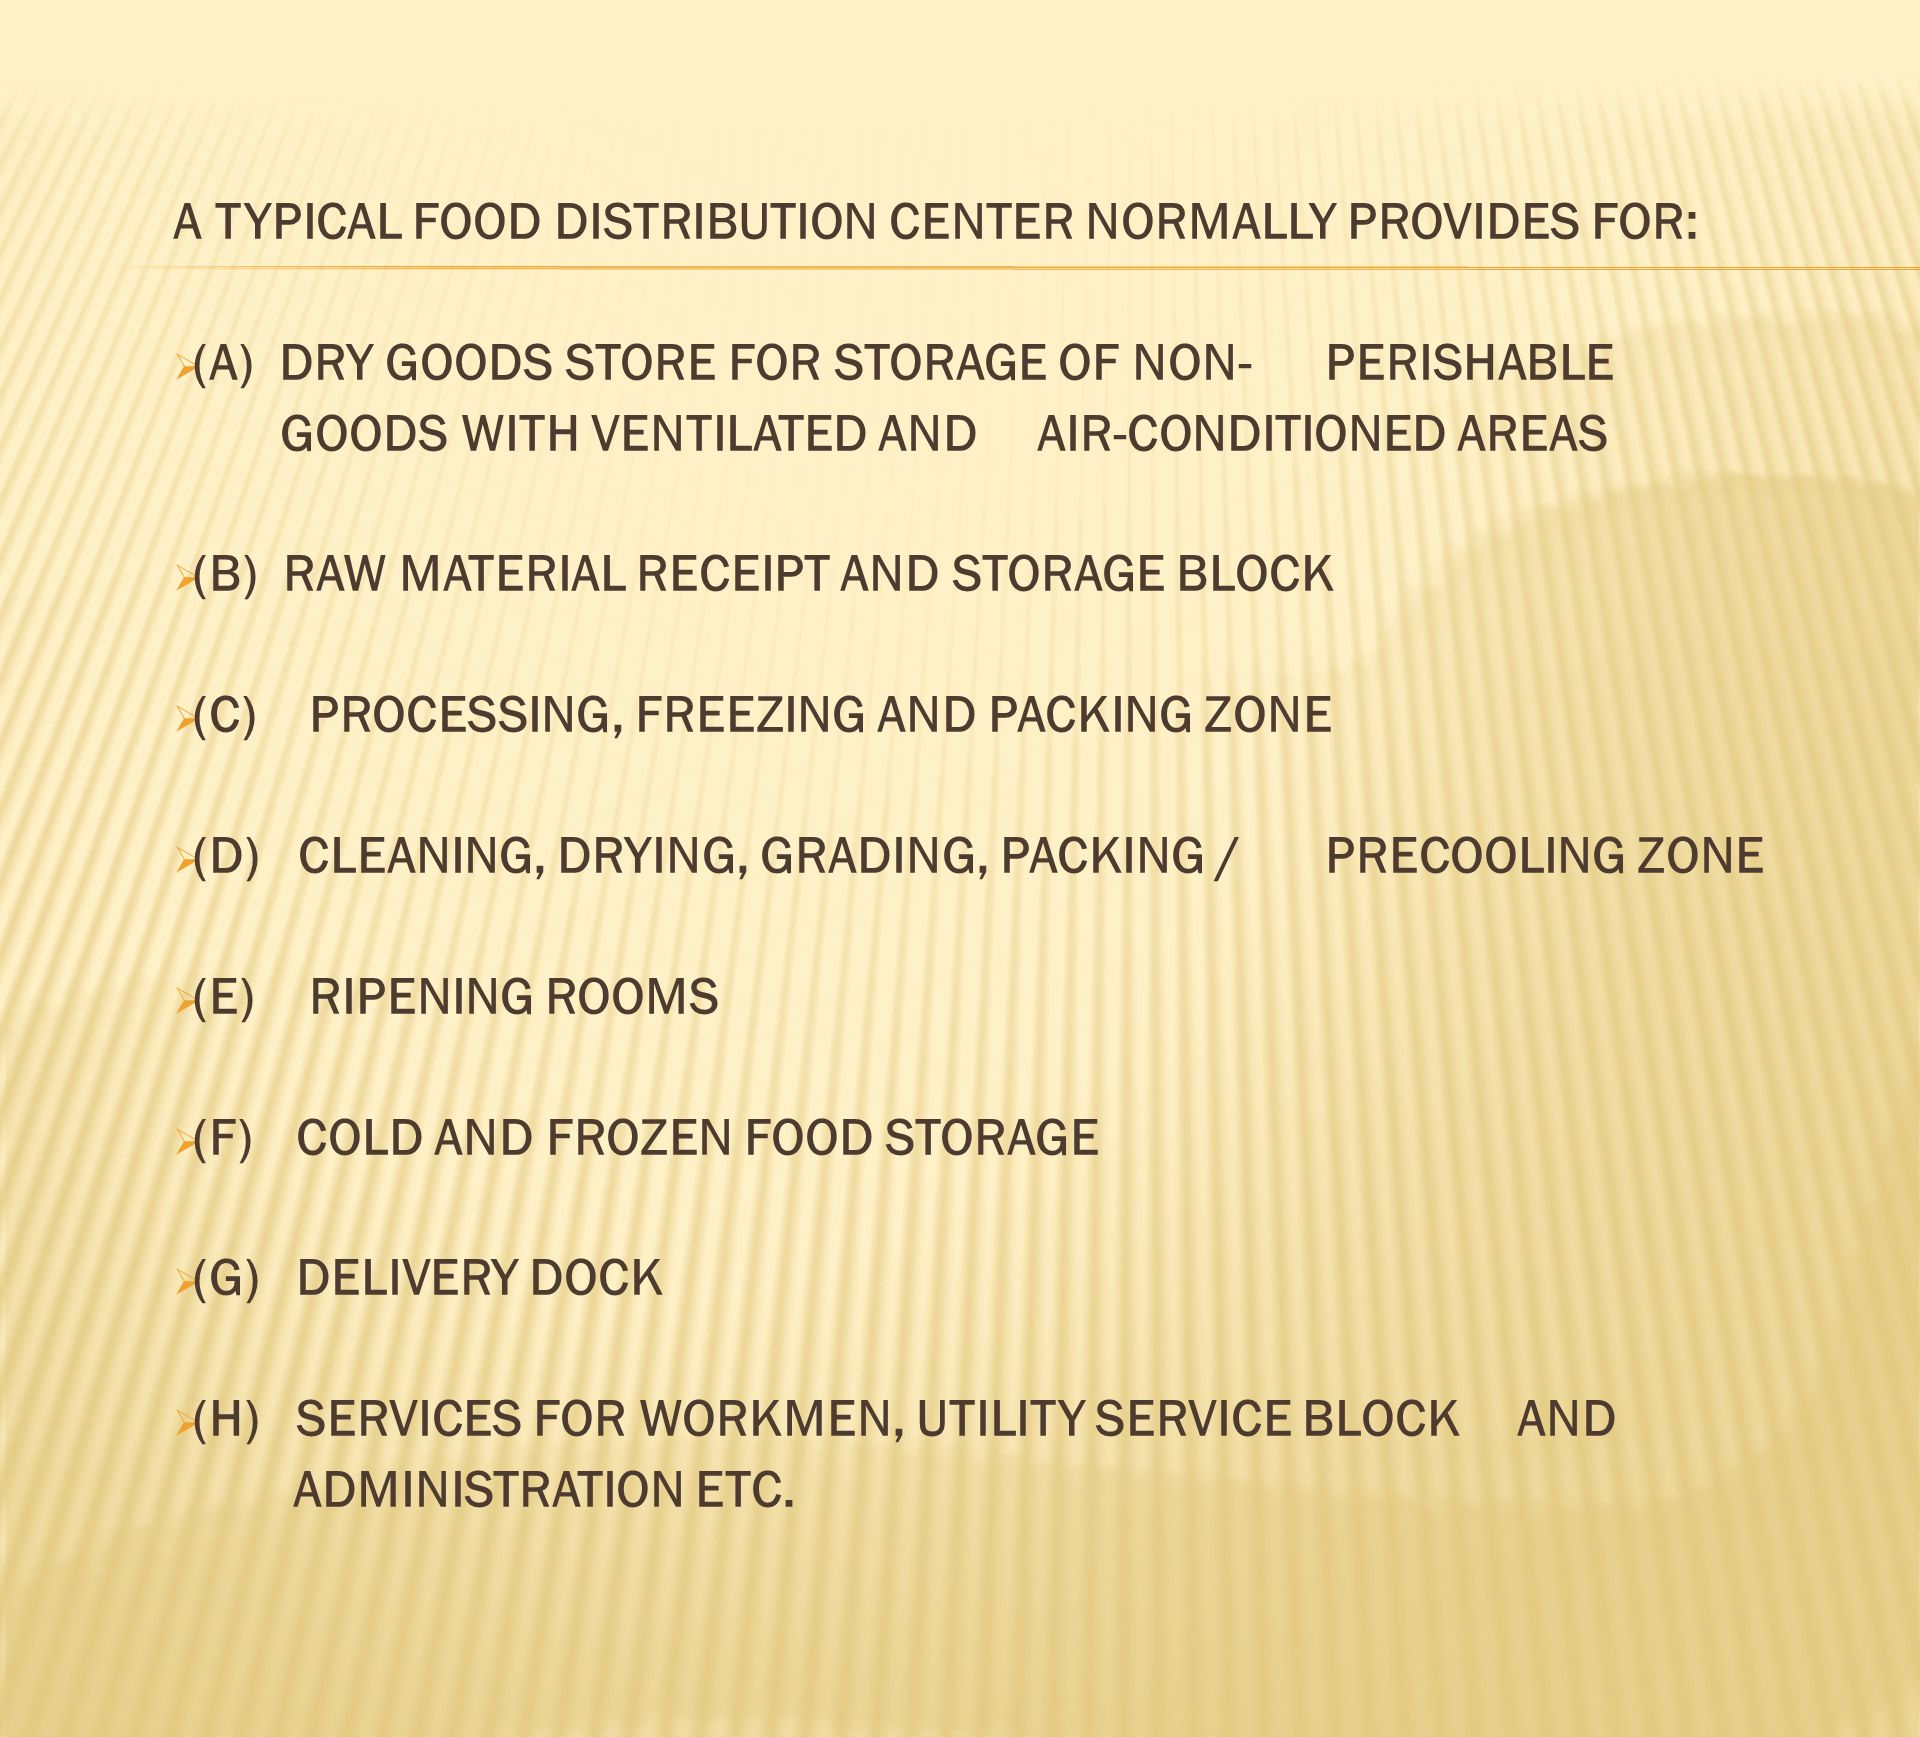 A TYPICAL FOOD DISTRIBUTION CENTER NORMALLY PROVIDES FOR: